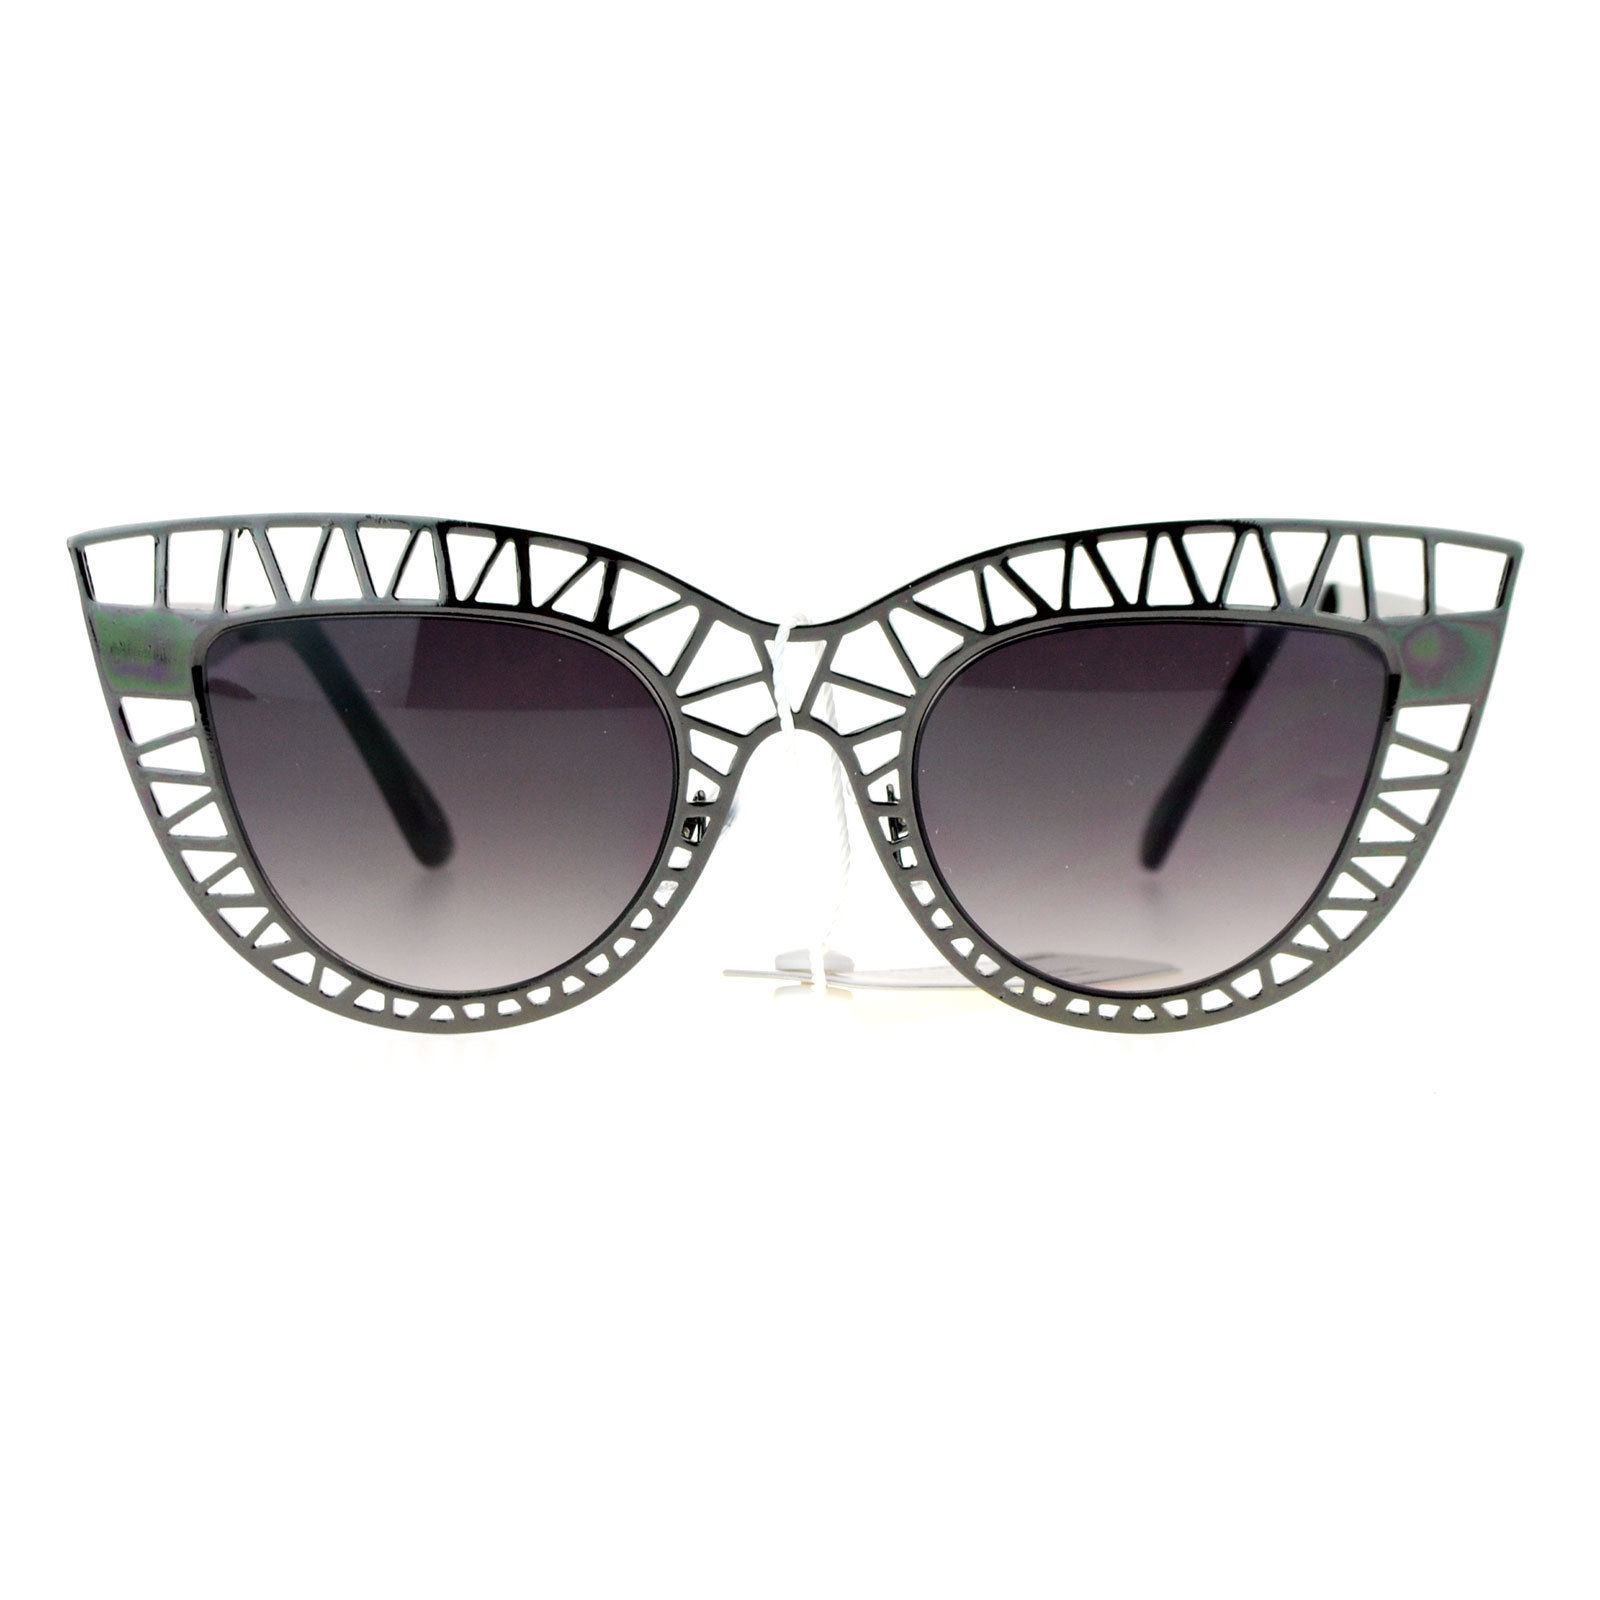 Wire Frame Cat Eye Glasses : SA106 Womens Lattice Wire Frame Unique Cat Eye Runway ...